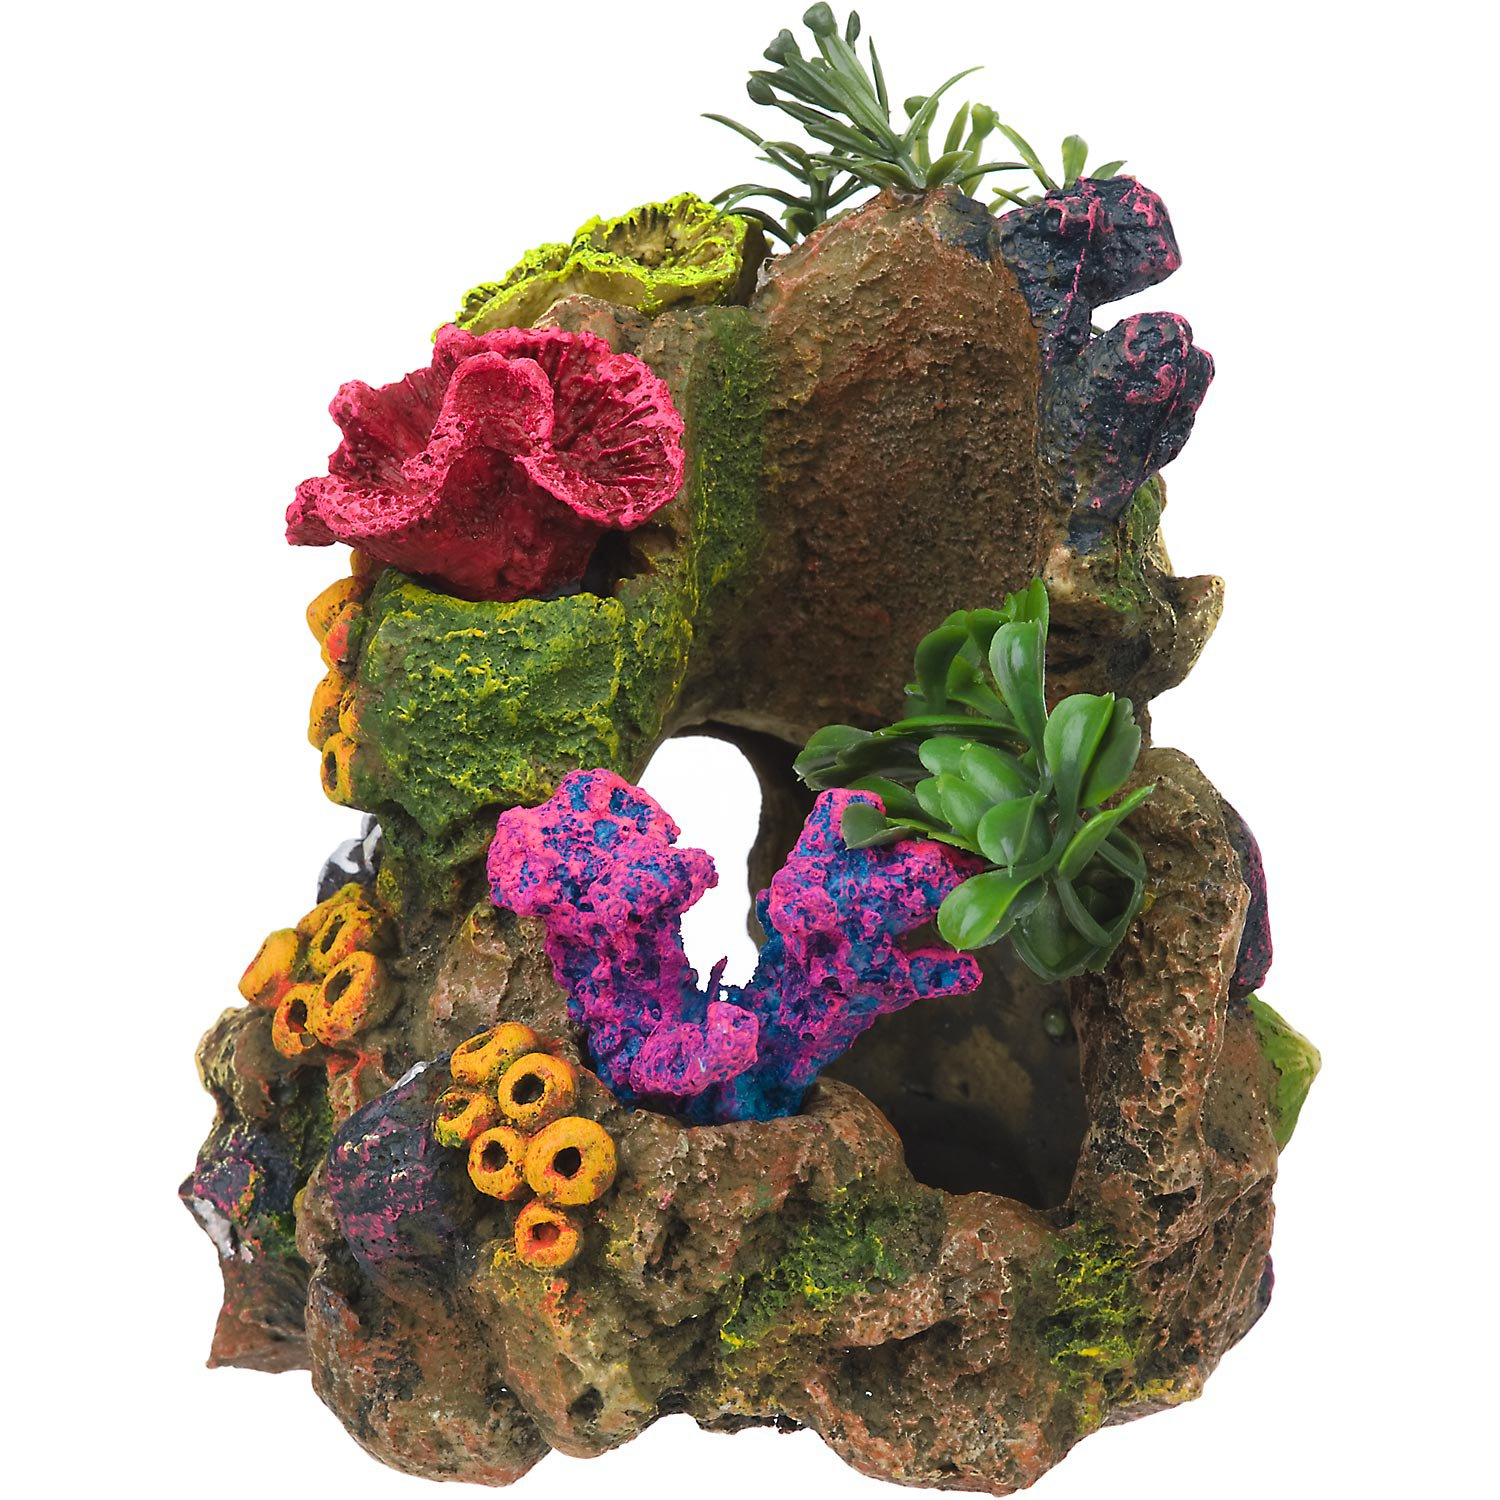 Rockgarden resin aquarium coral garden petco for Aquarium decoration